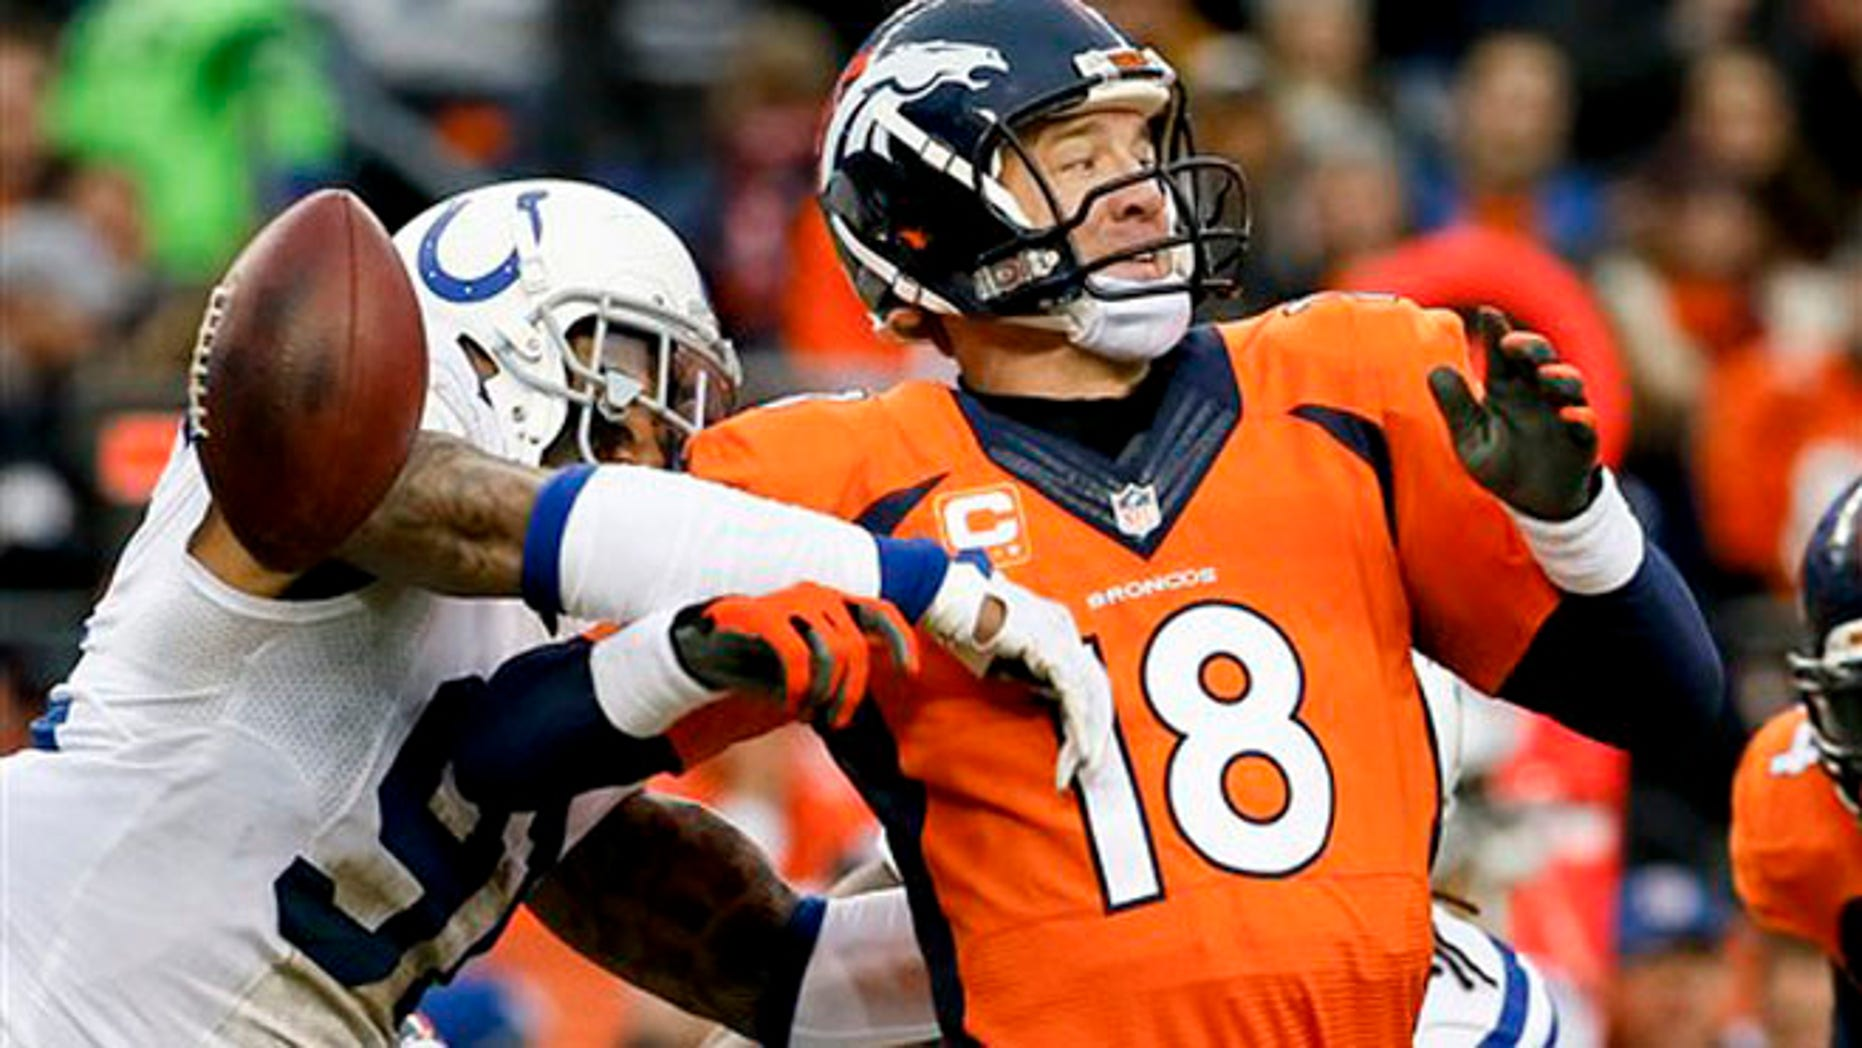 Jan. 11, 2015: Indianapolis Colts linebacker Jonathan Newsome, left, reaches in to force Denver Broncos quarterback Peyton Manning fumble during the first half of an NFL divisional playoff football game.